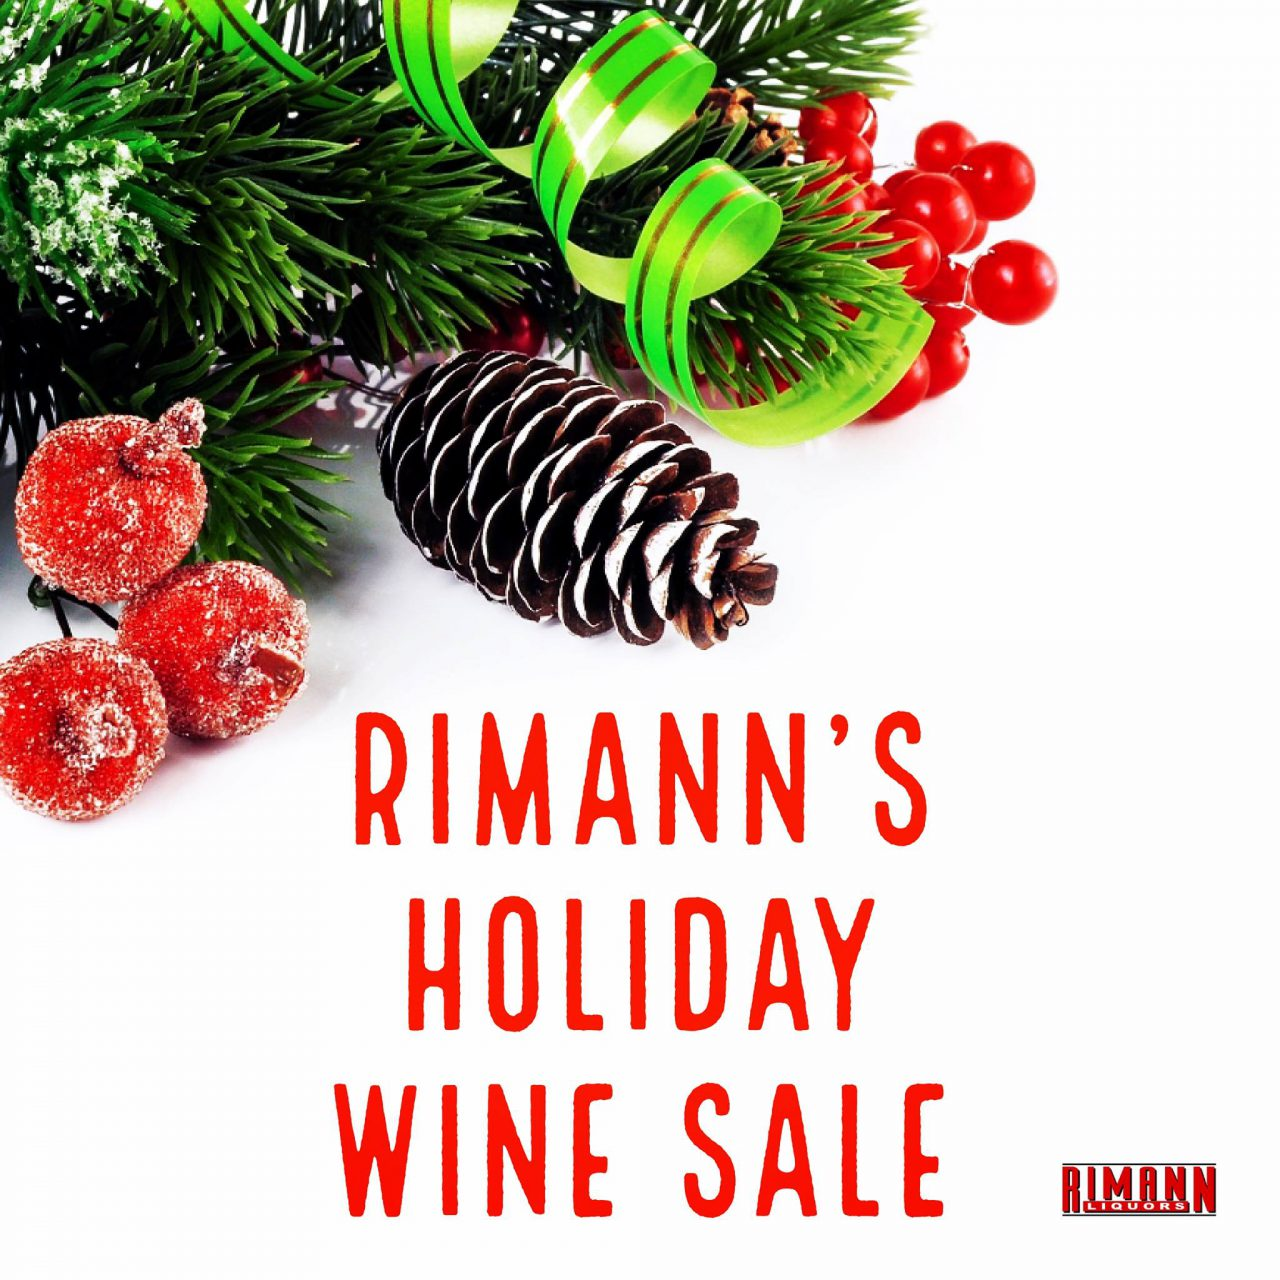 Holiday Wine Sale Going on Now!